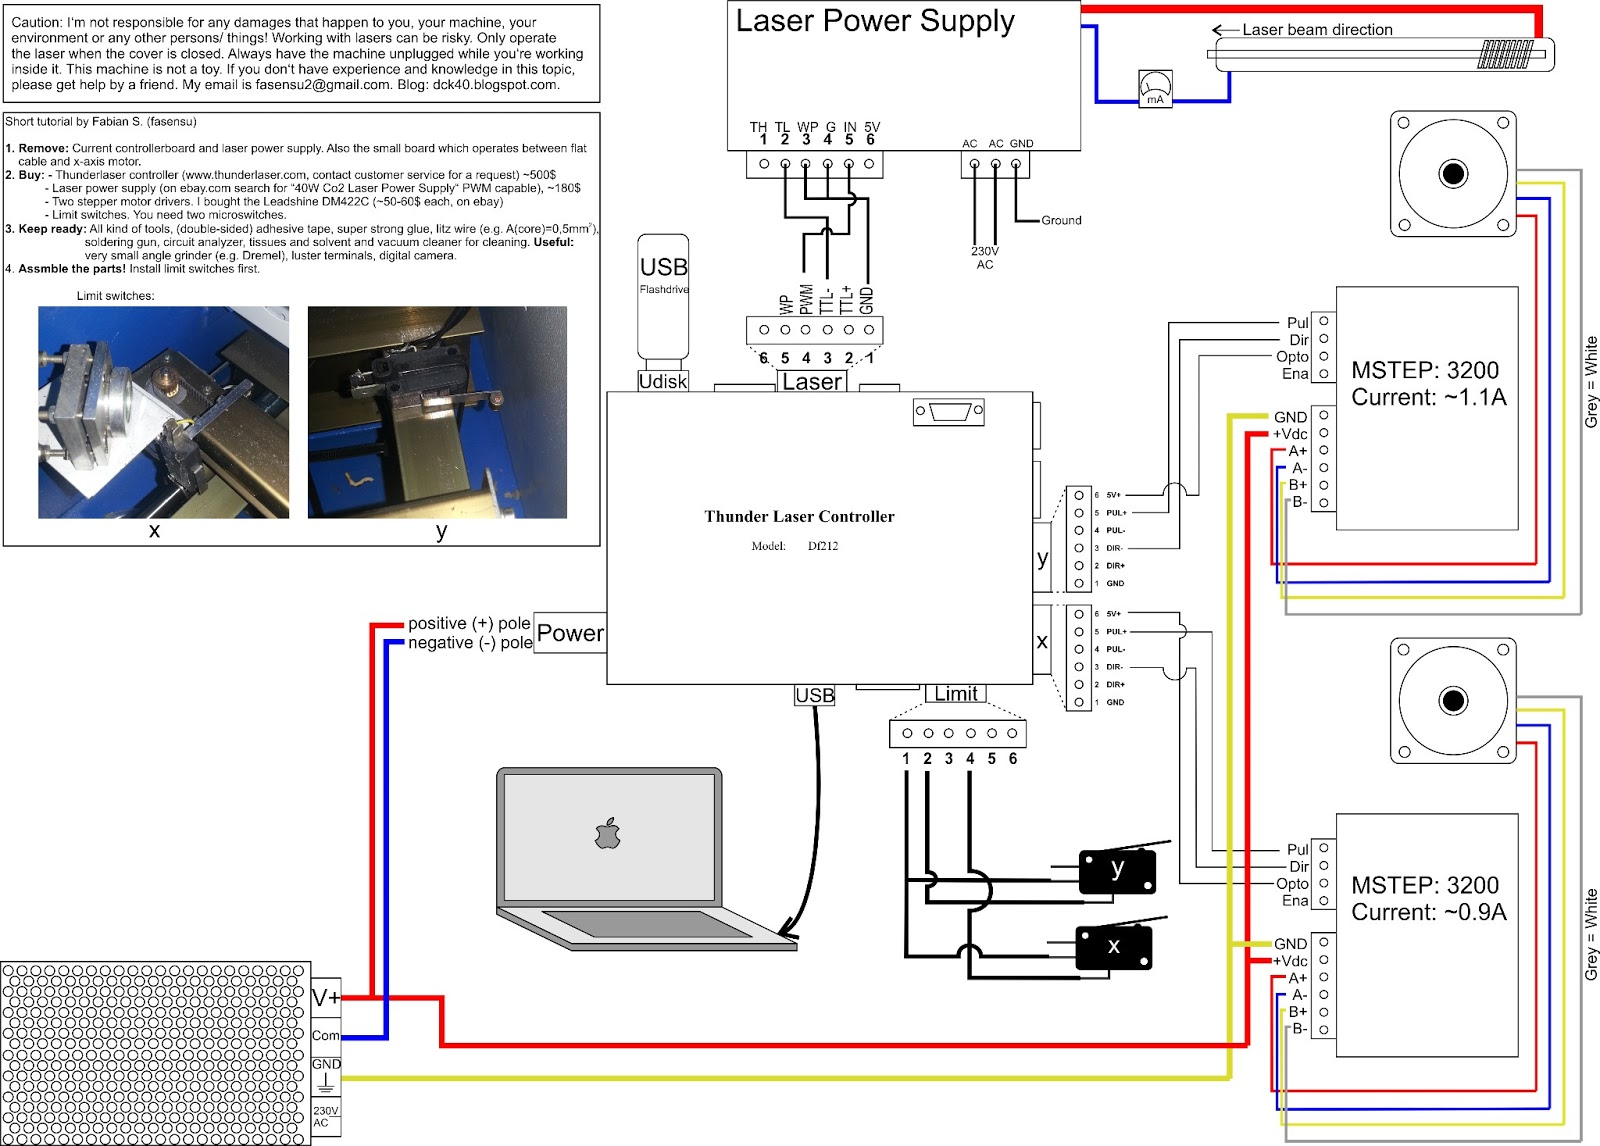 k40 power supply wiring diagram. smoothk40 guide smoothie project. dc k40  blog. k40 smoothie wiring diagram lasercutting. don 39 s laser cutter  things k40 s laser power supply. install a ma meter  a.2002-acura-tl-radio.info. all rights reserved.